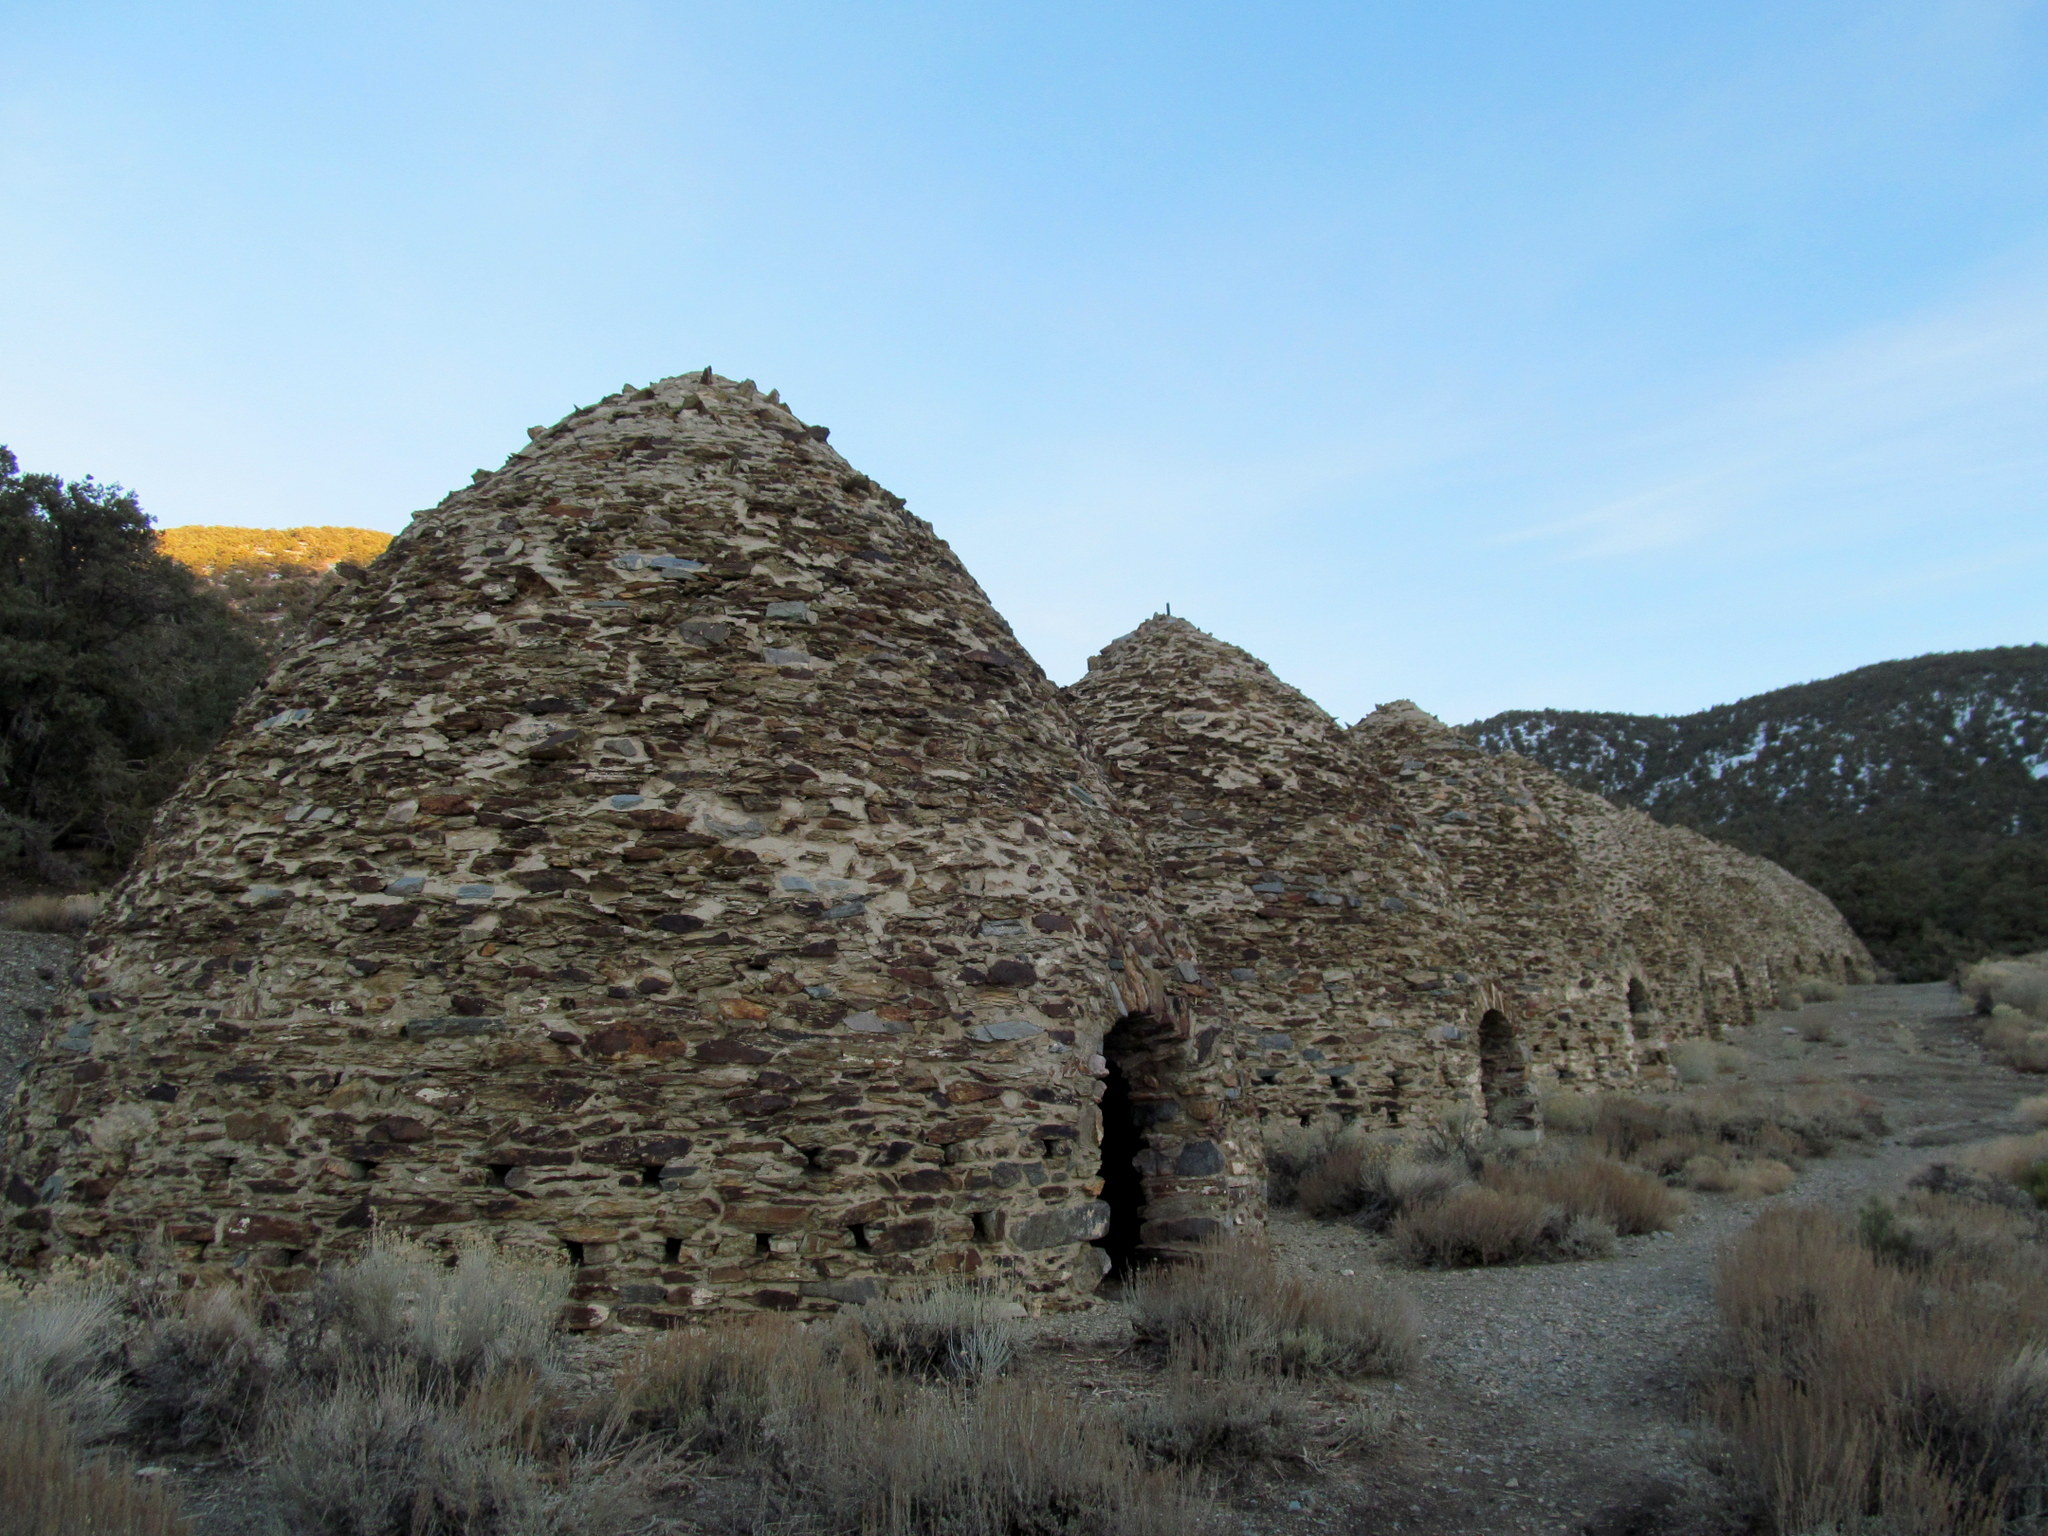 Photo: Wildrose charcoal kilns